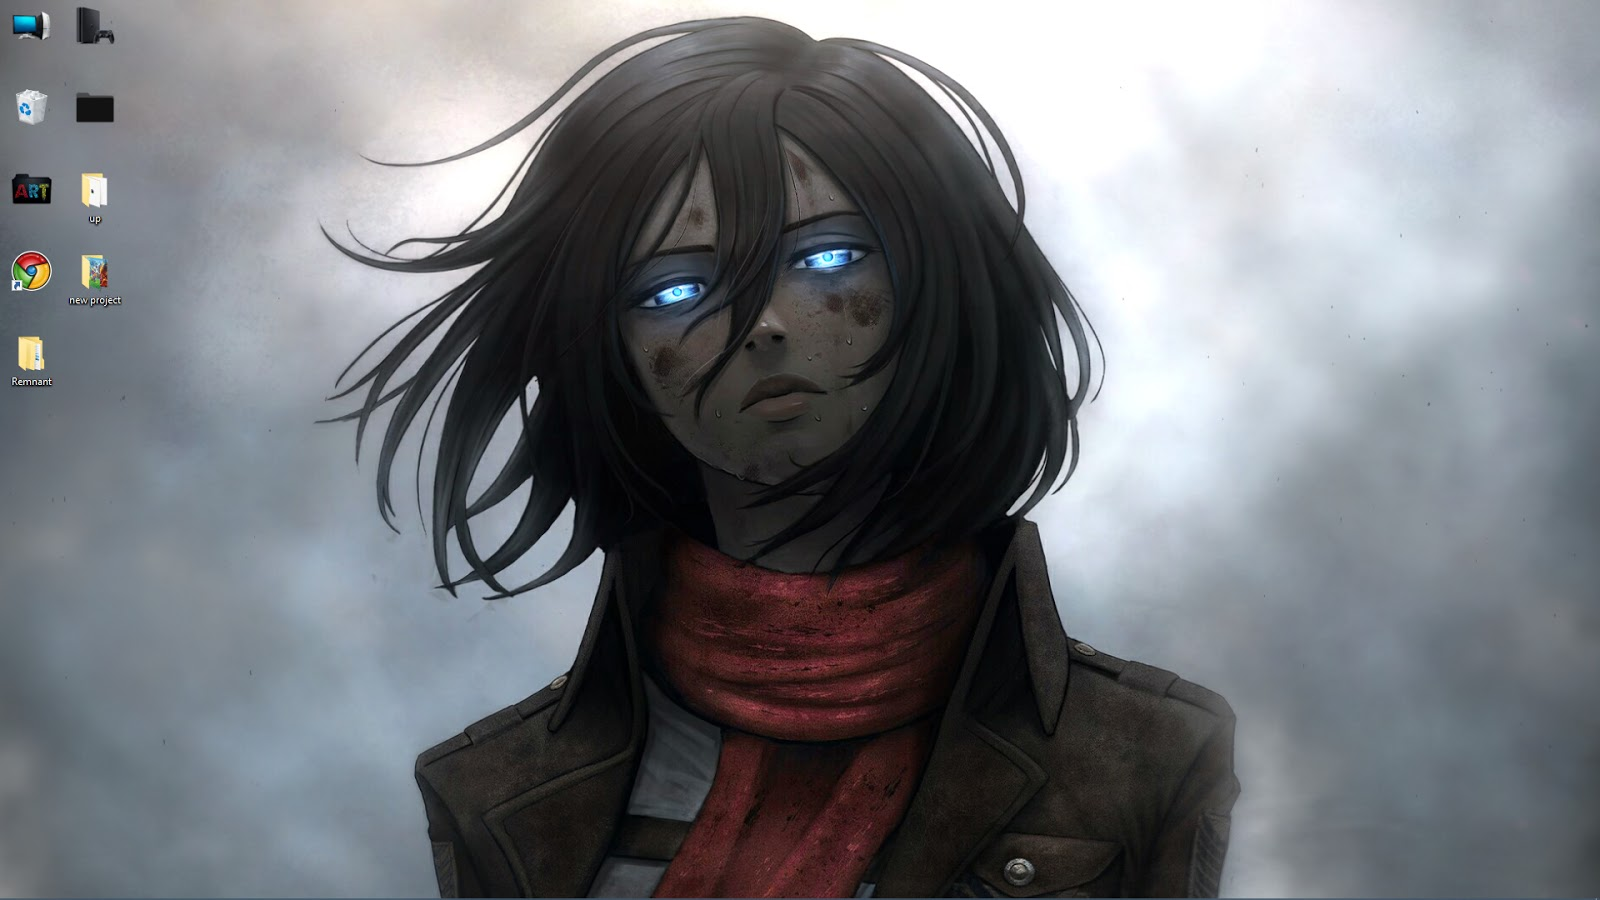 Wallpaper Engine Anime Mikasa Ackerman Attack On Titan Live Wallpaper Free Download